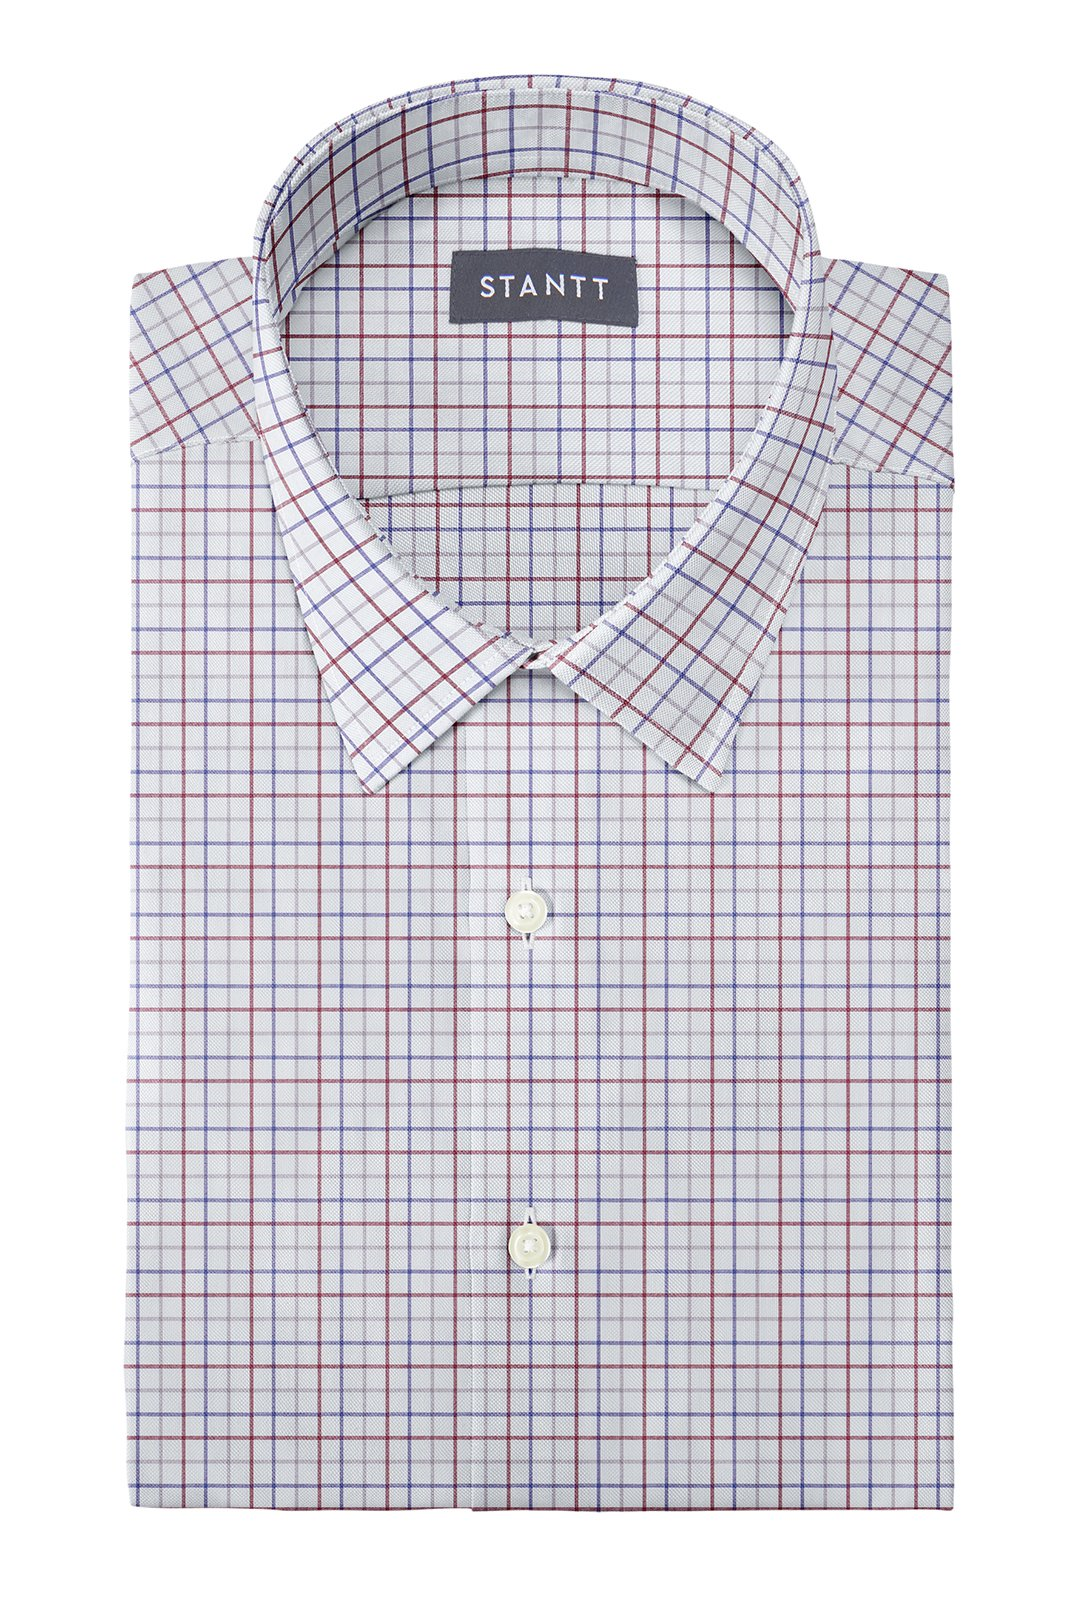 Matrix Multi-Color Tattersall: Semi-Spread Collar, Barrel Cuff